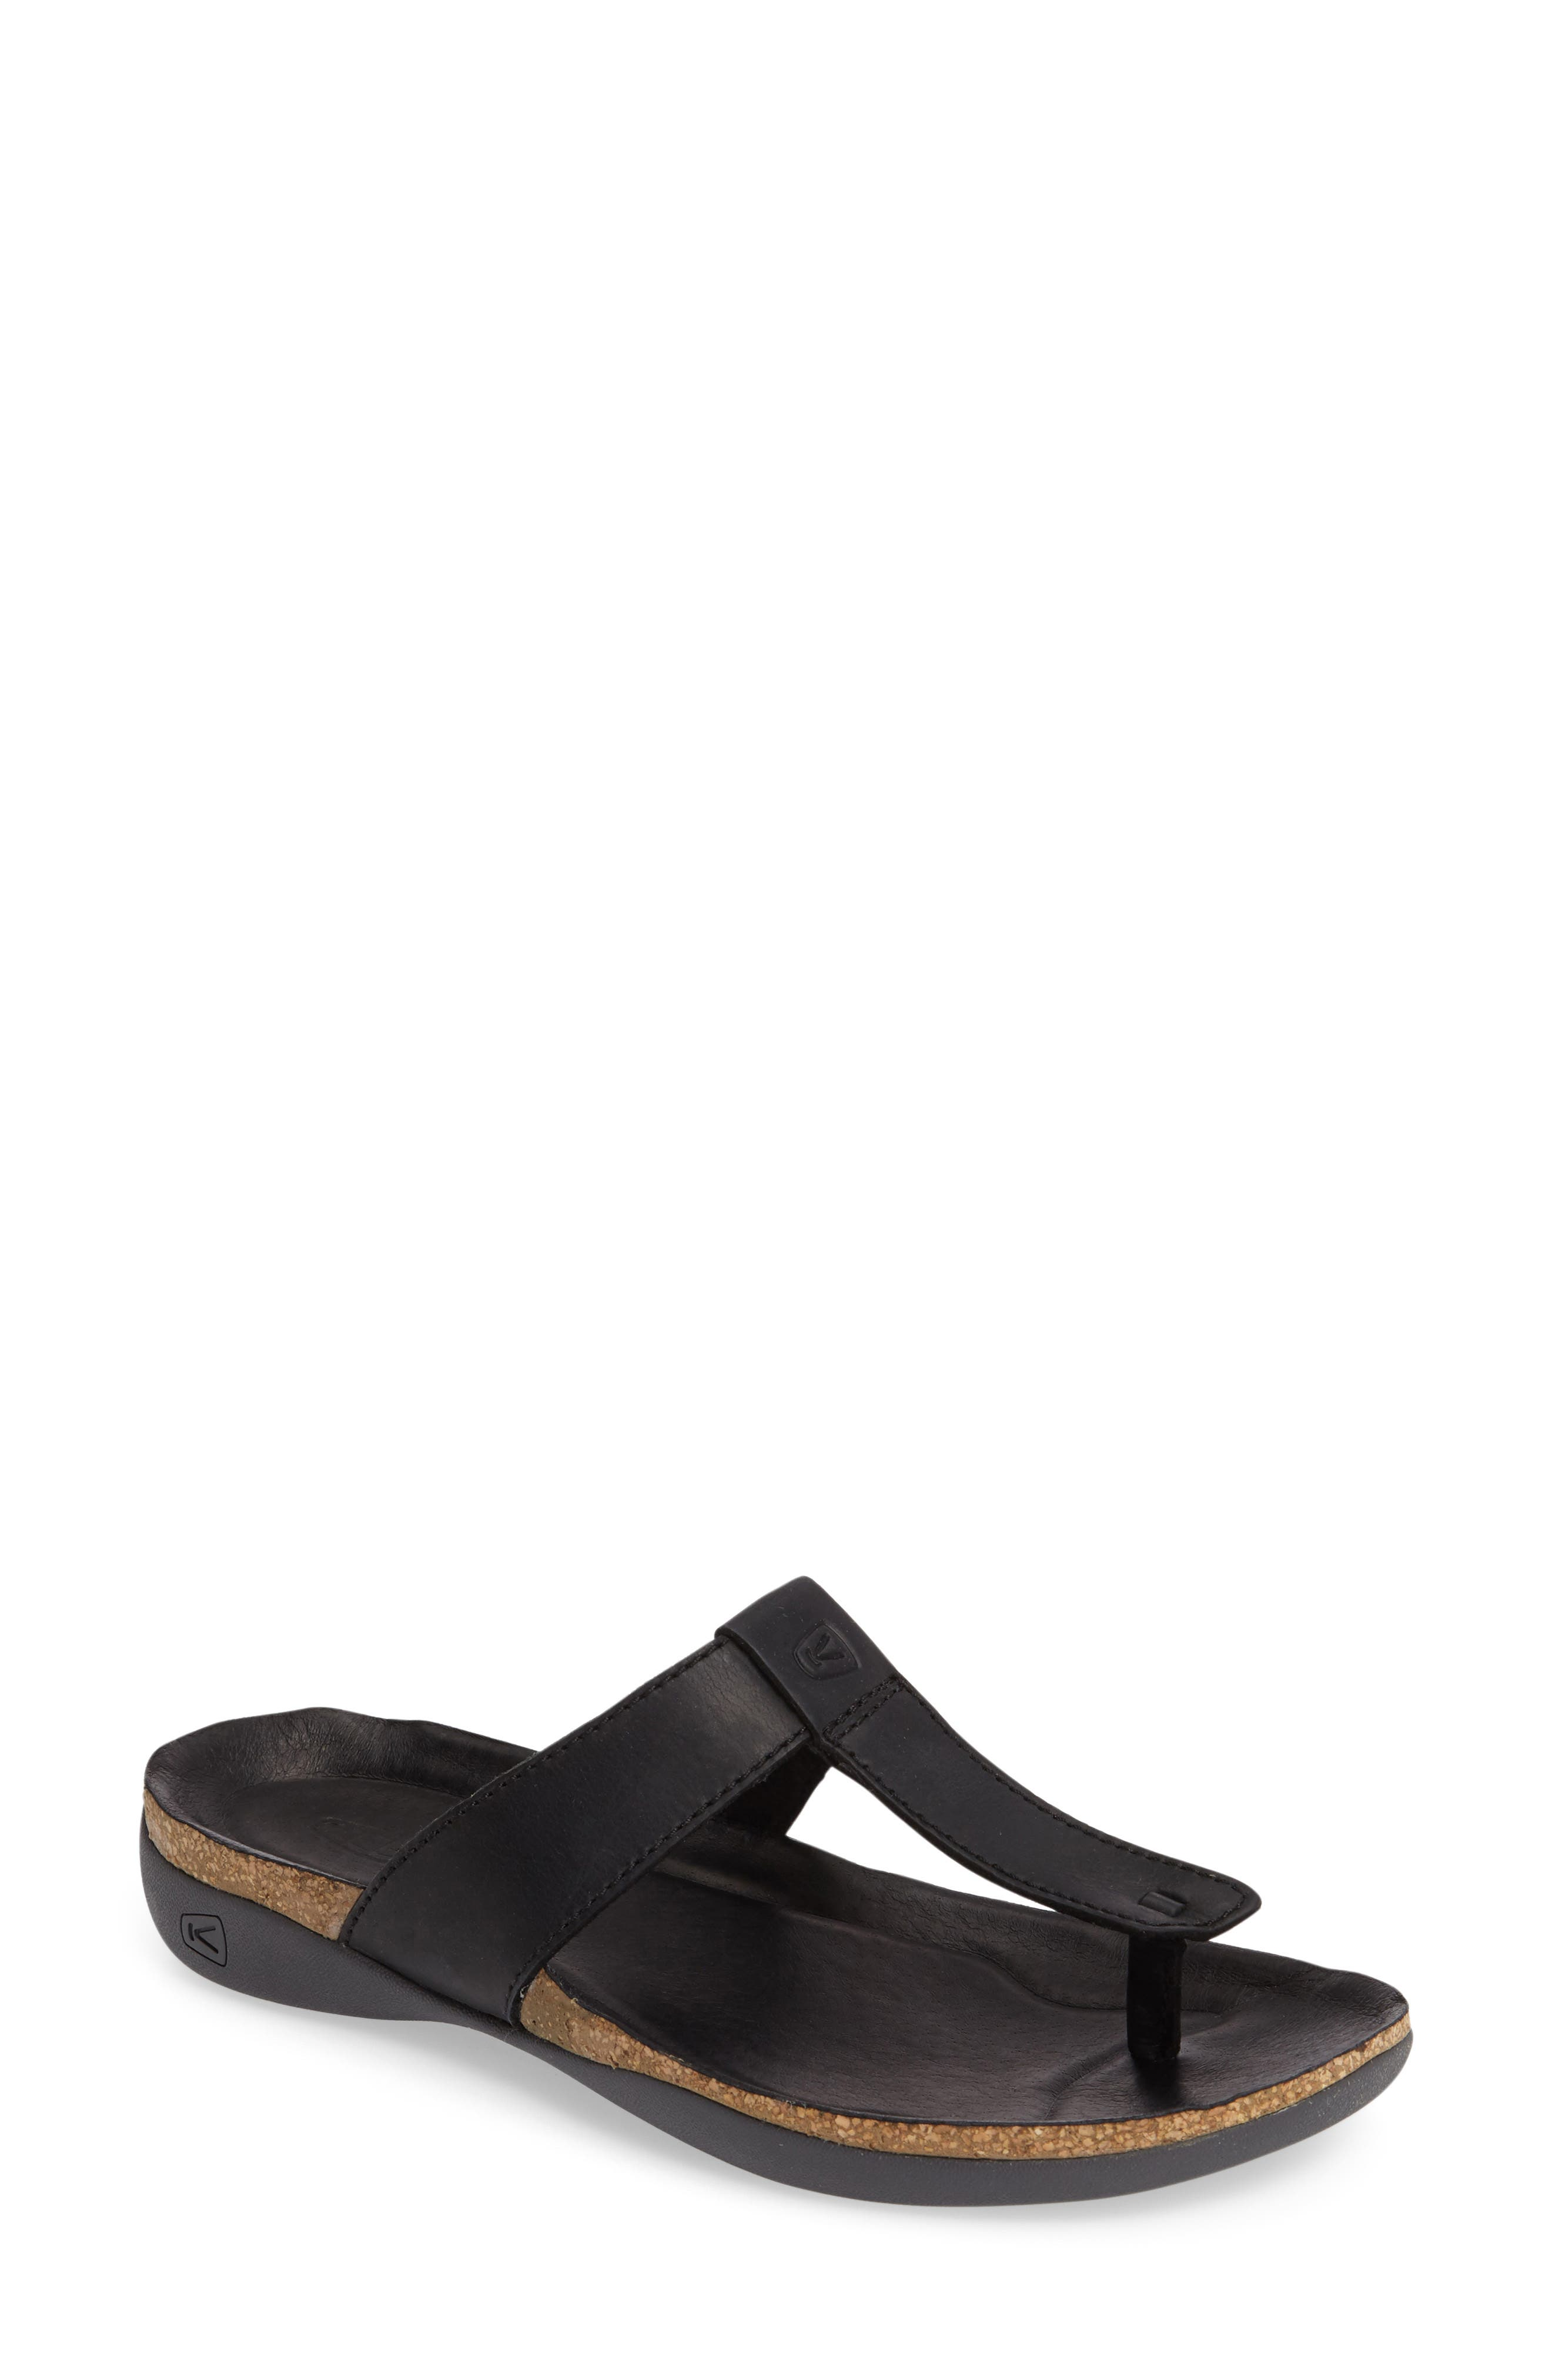 Alternate Image 1 Selected - Keen Dauntless Sandal (Women)